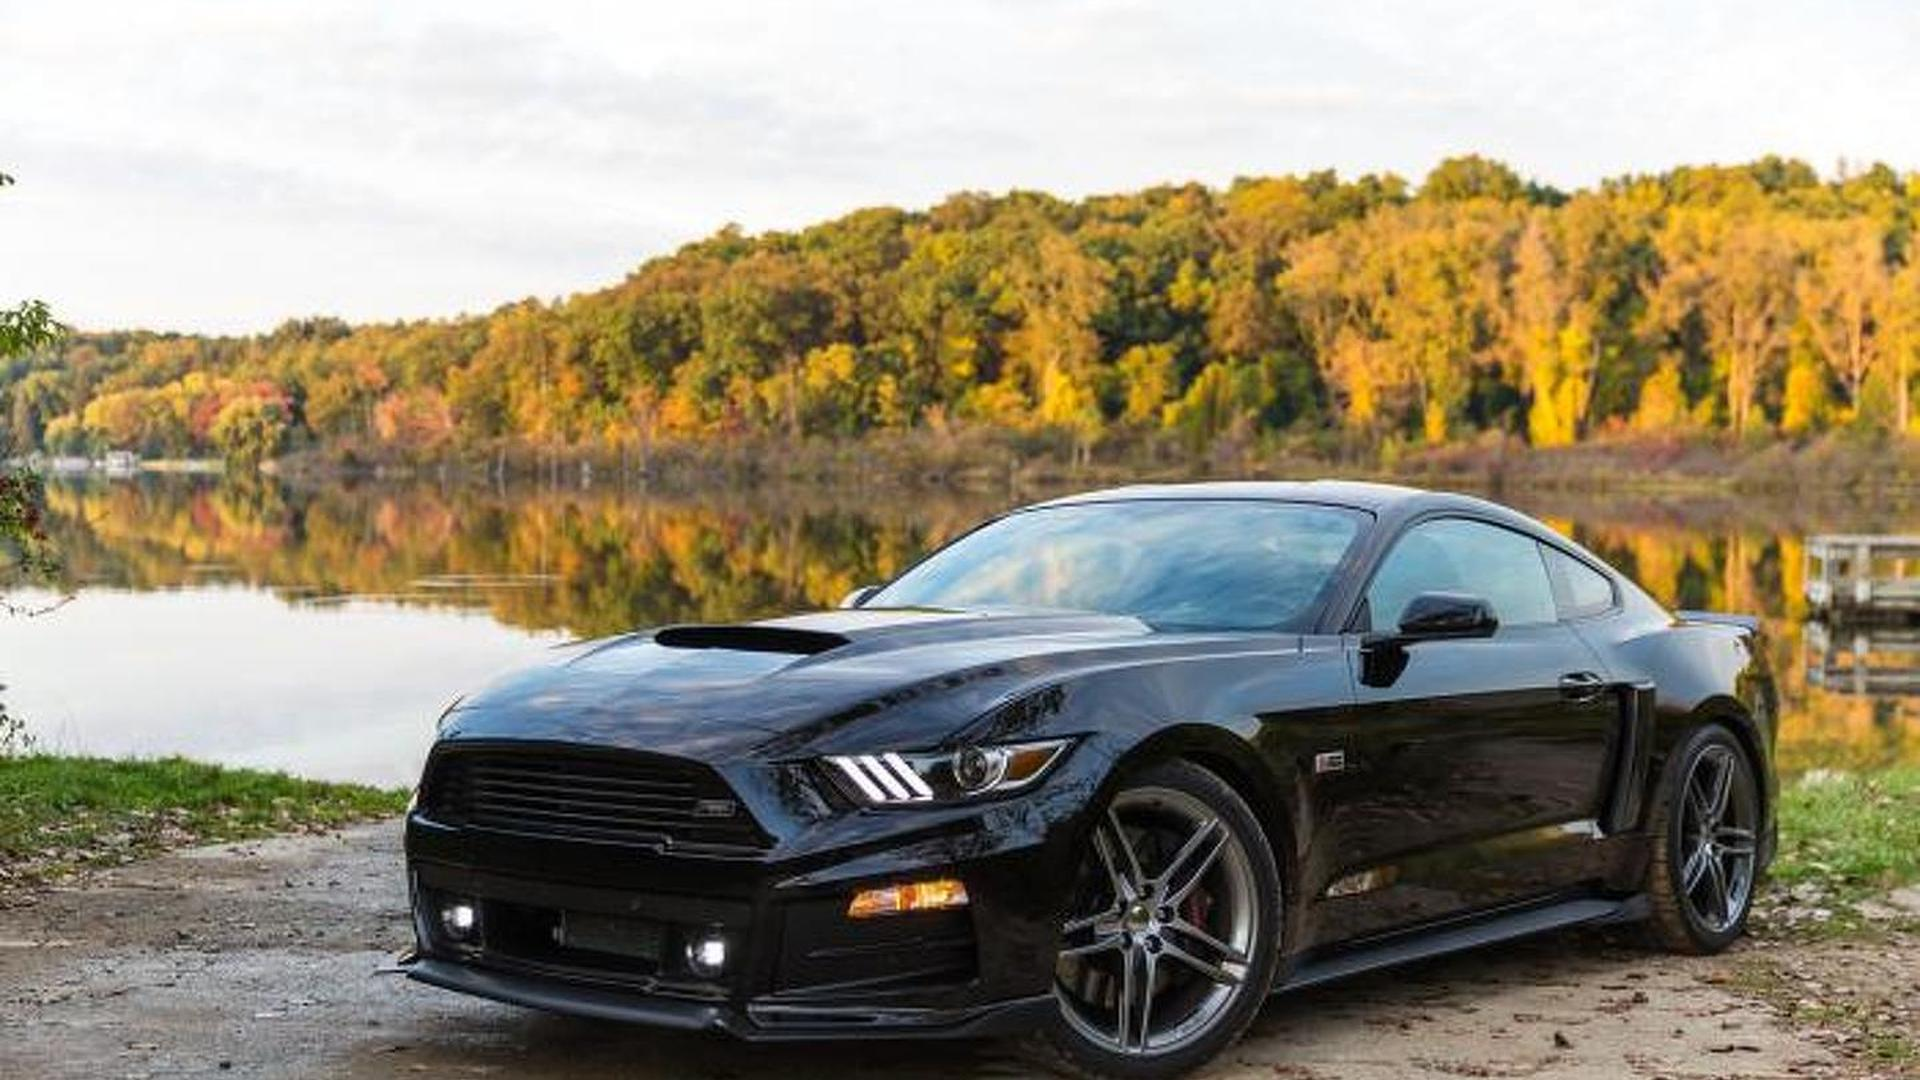 2015 ford mustang gt gets 600 bhp thanks to roush supercharger video